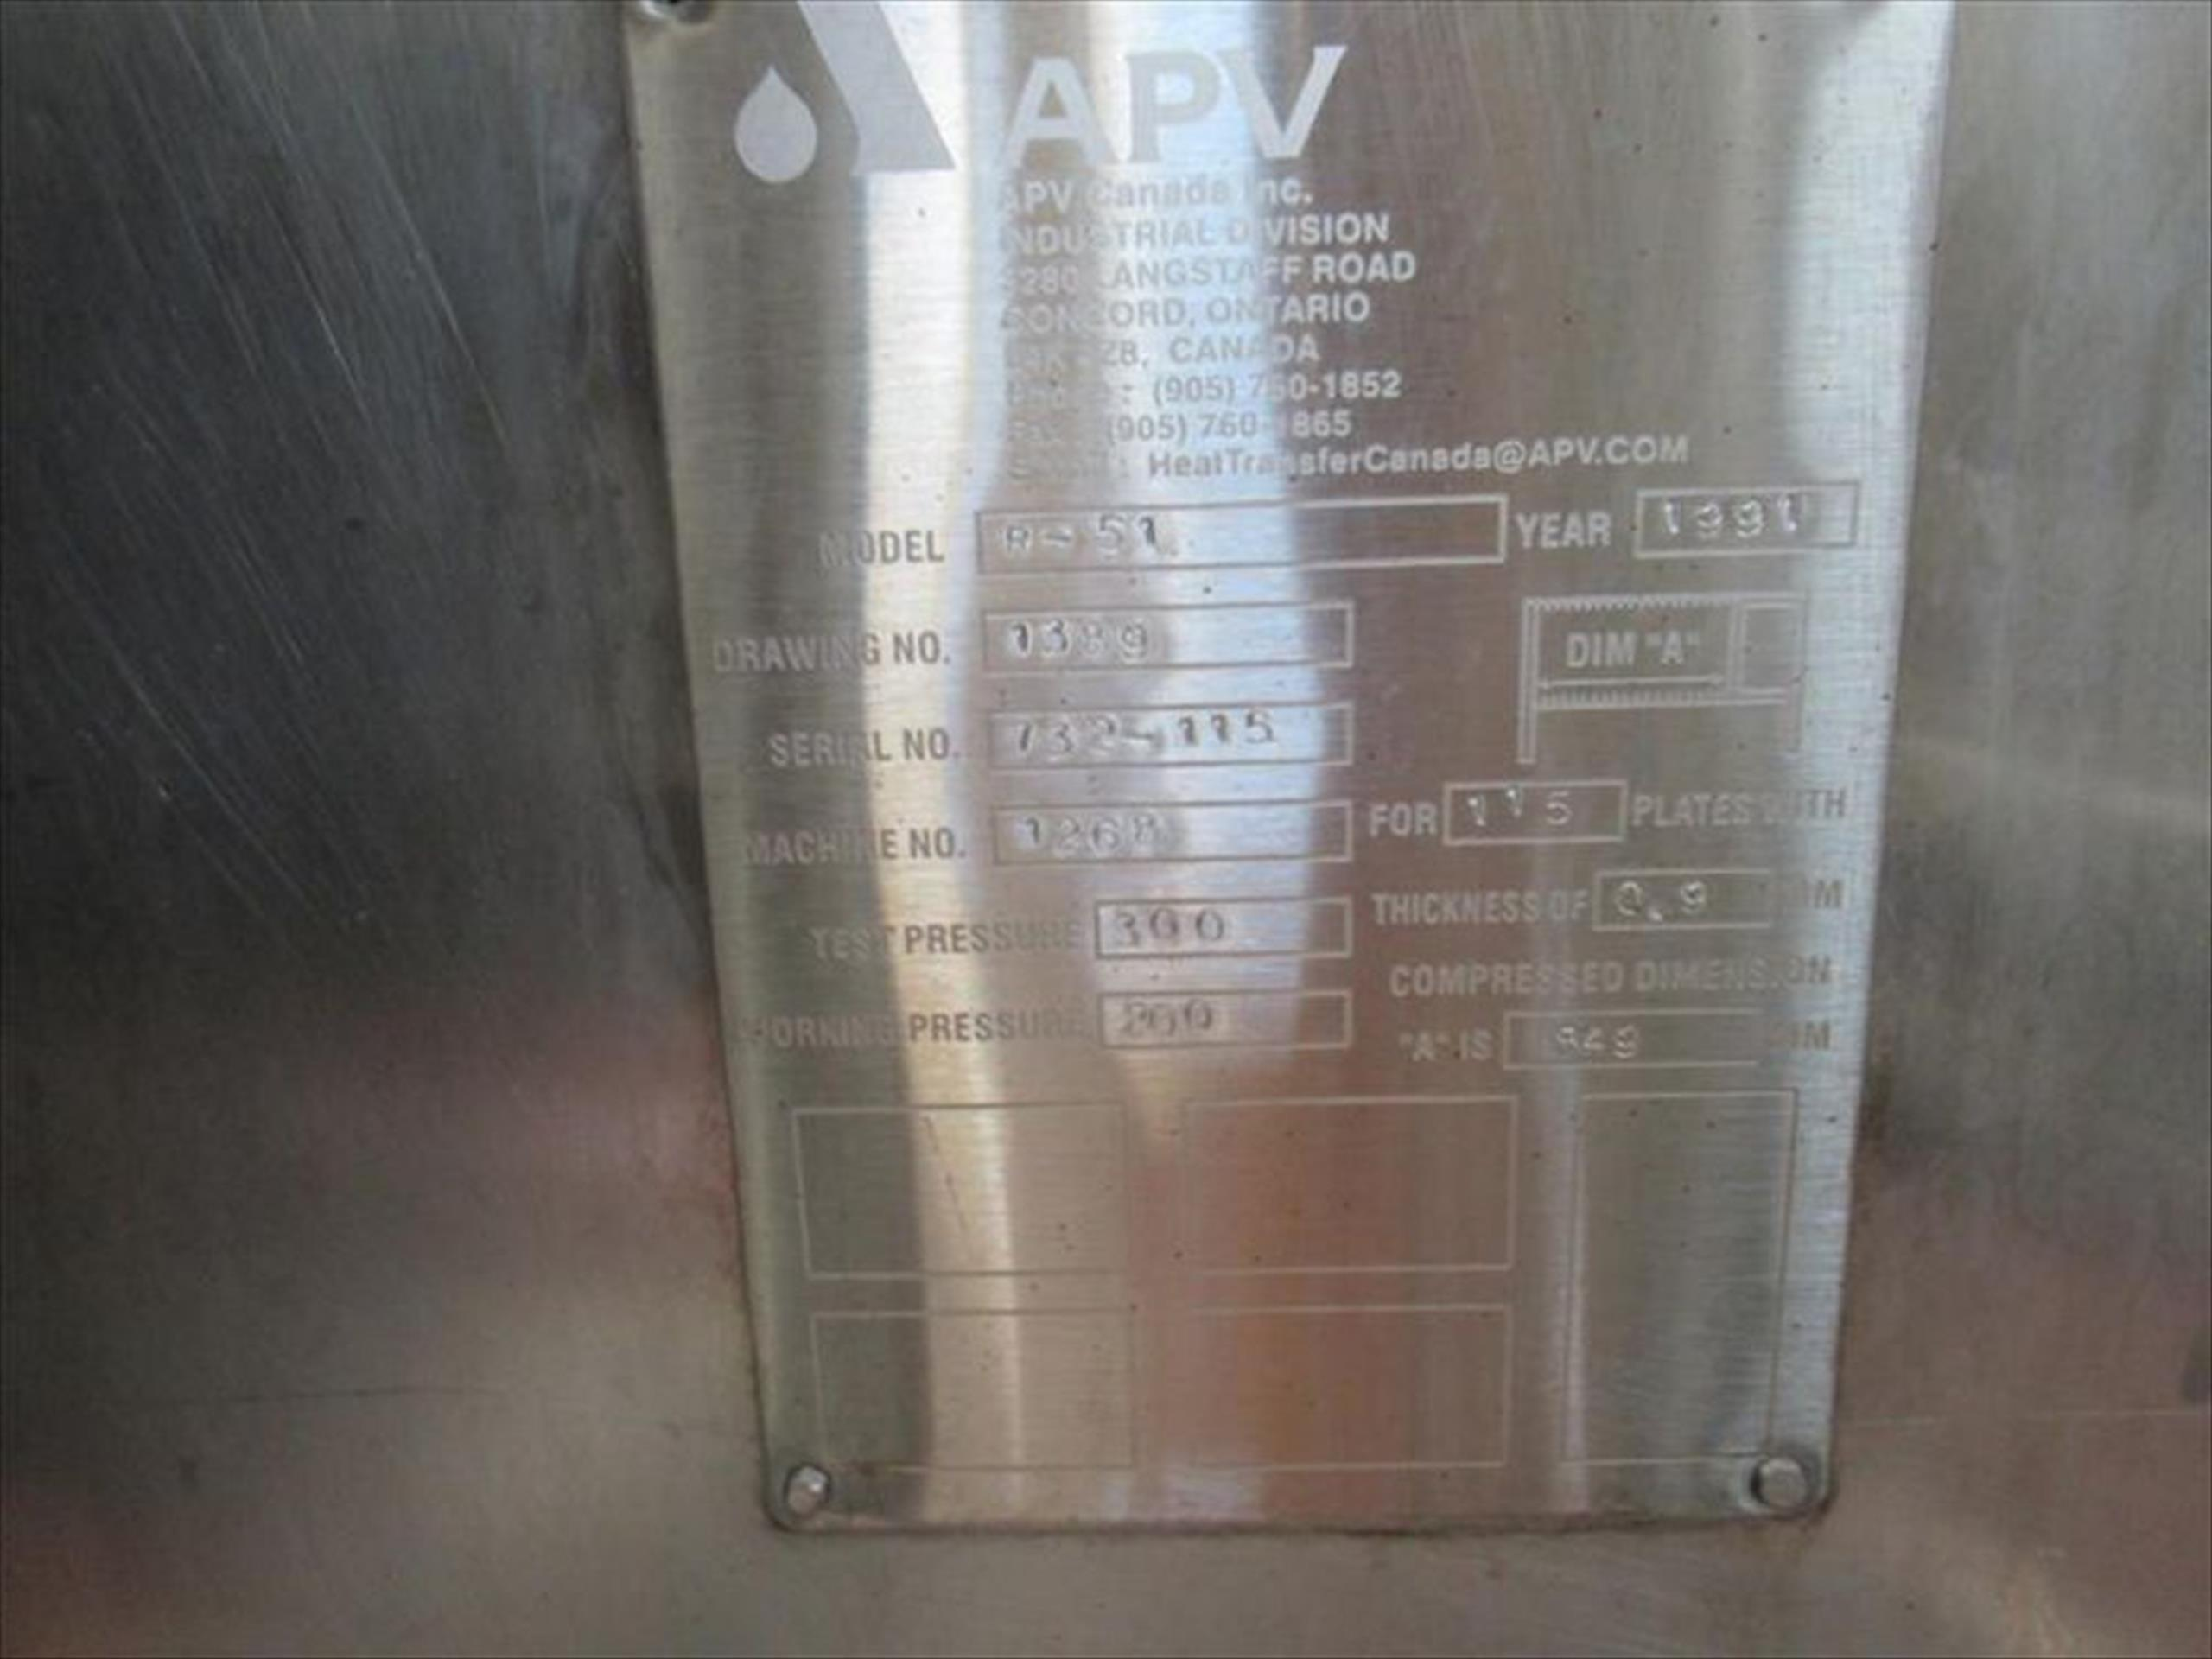 APV plate-in-frame sterilizer #2 mod. no. R-51 ser. no. 732-115 para flow with 316ss packed - Image 2 of 2